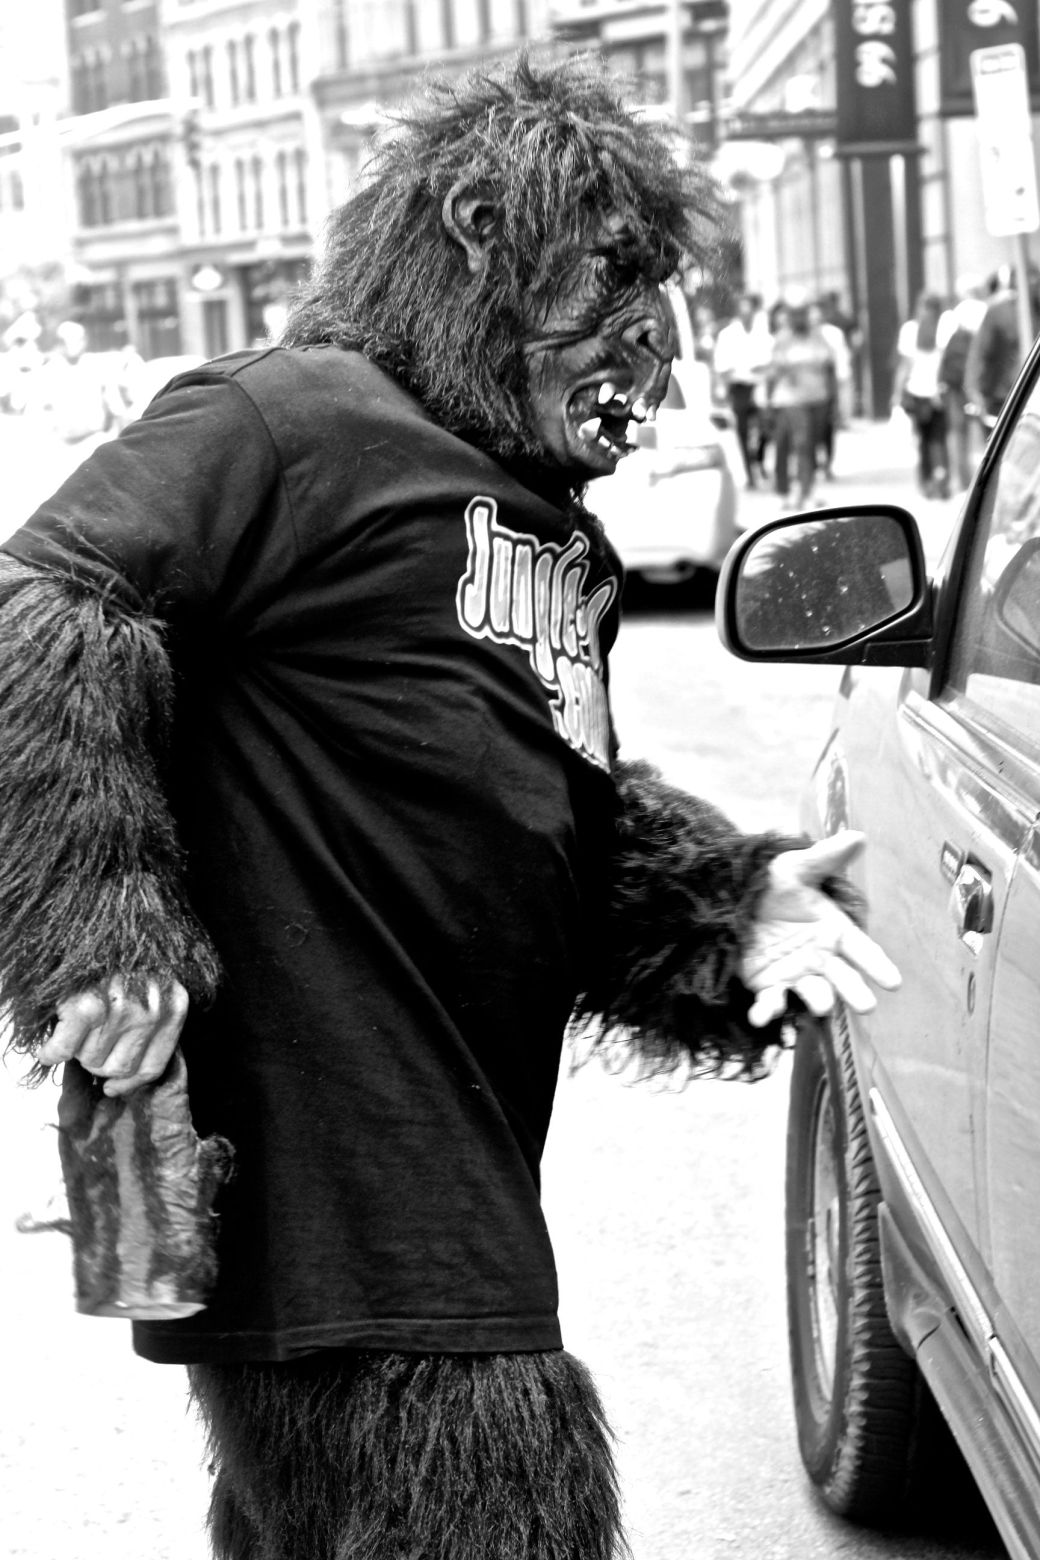 boston downtown crossing man in gorilla suit